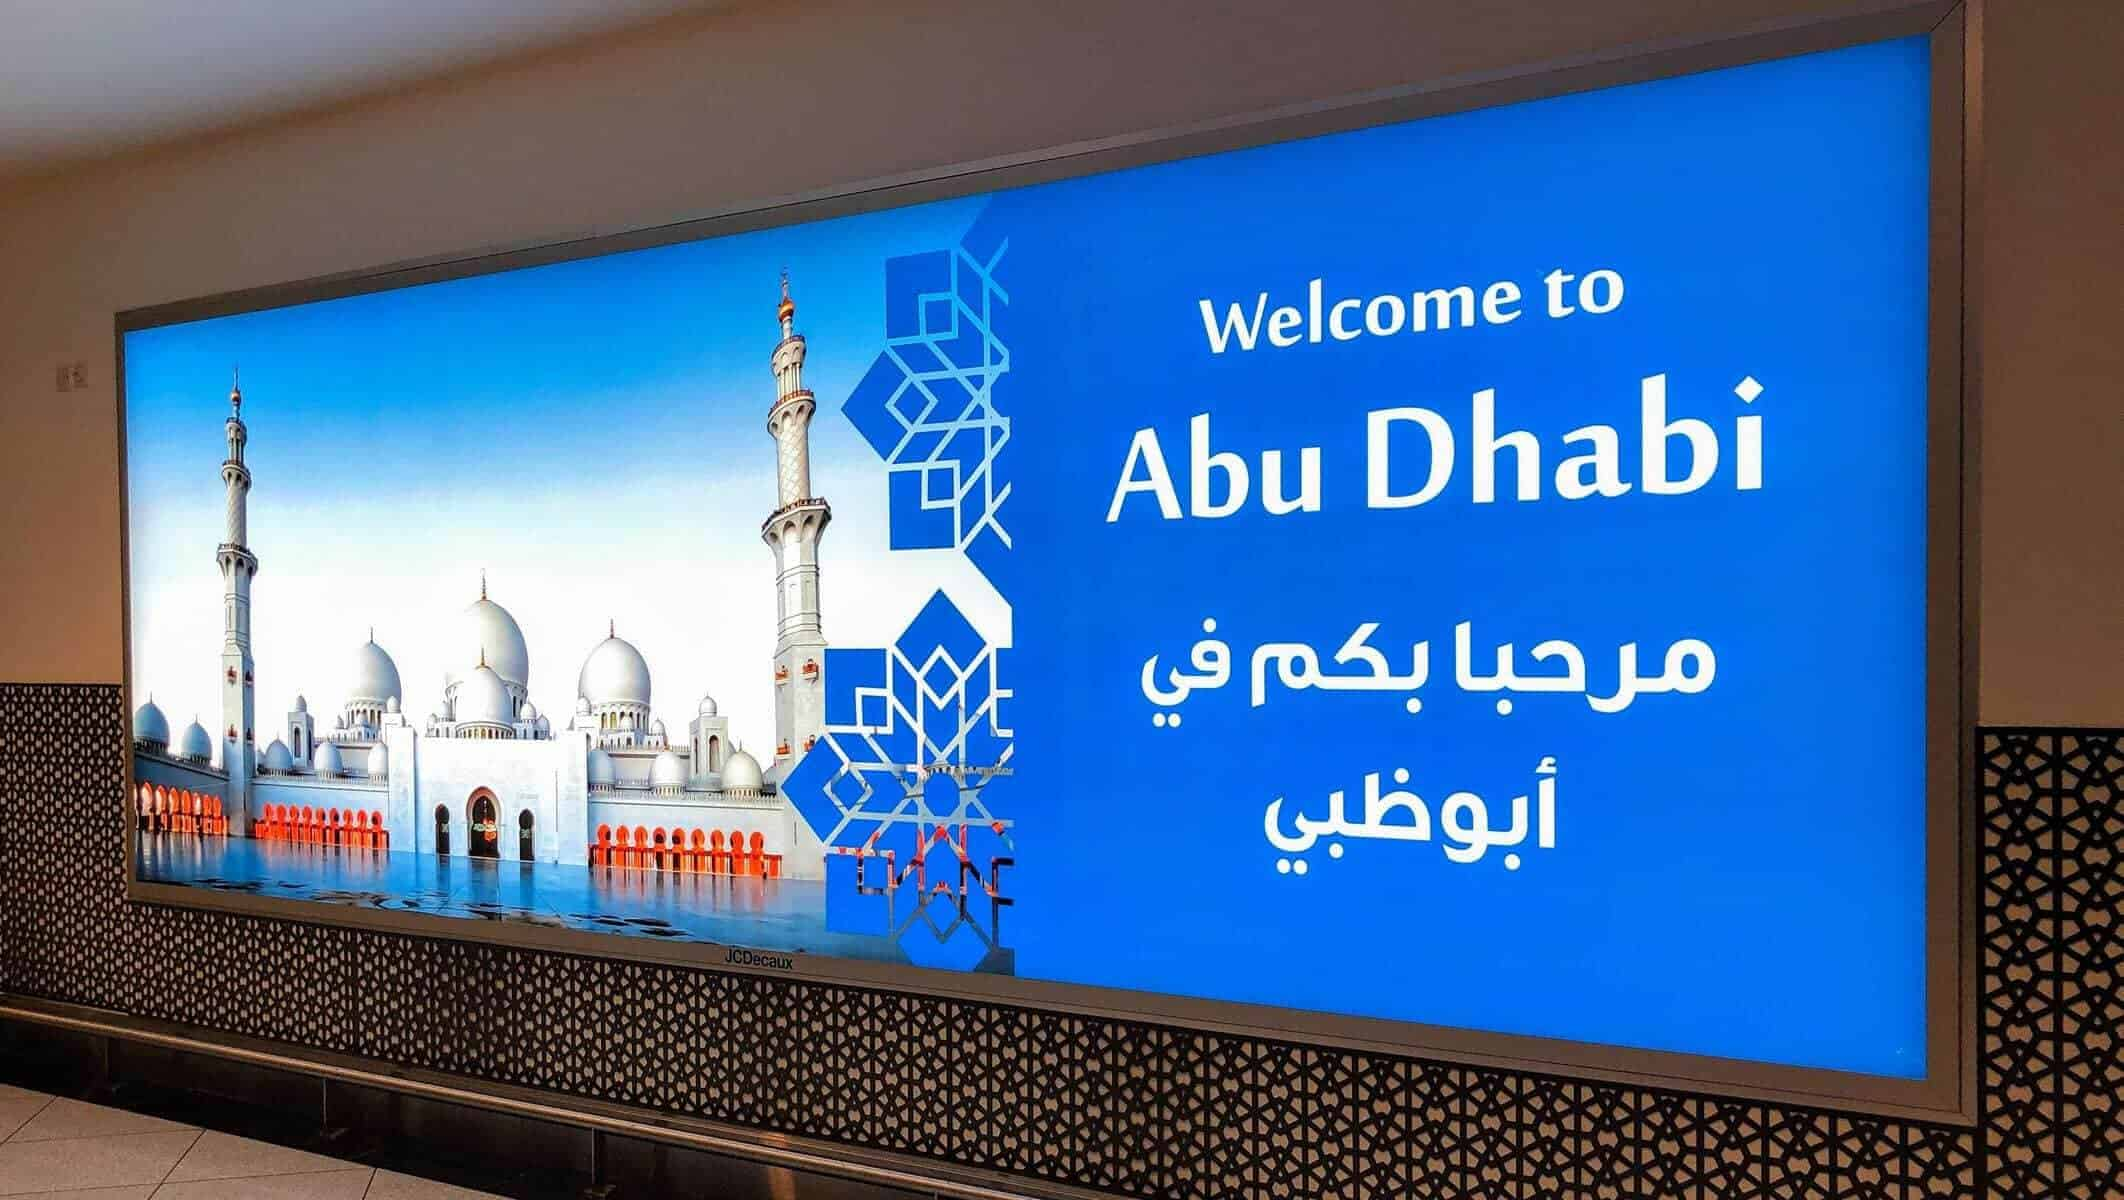 welcome to abu dhabi